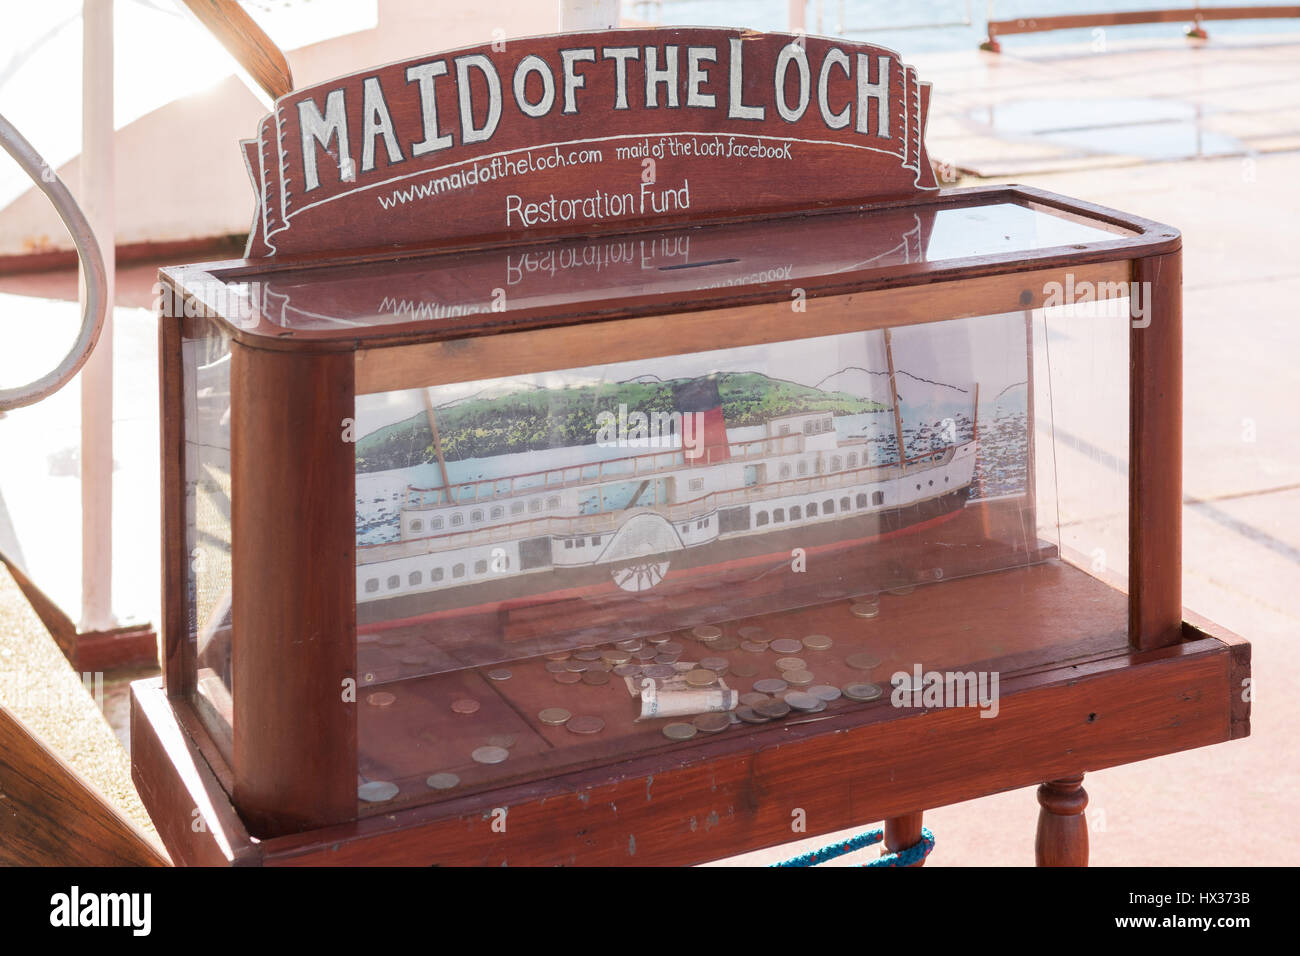 Maid of the Loch Restoration Fund collection donation box including old style pound coins, Balloch, Scotland, UK - Stock Image